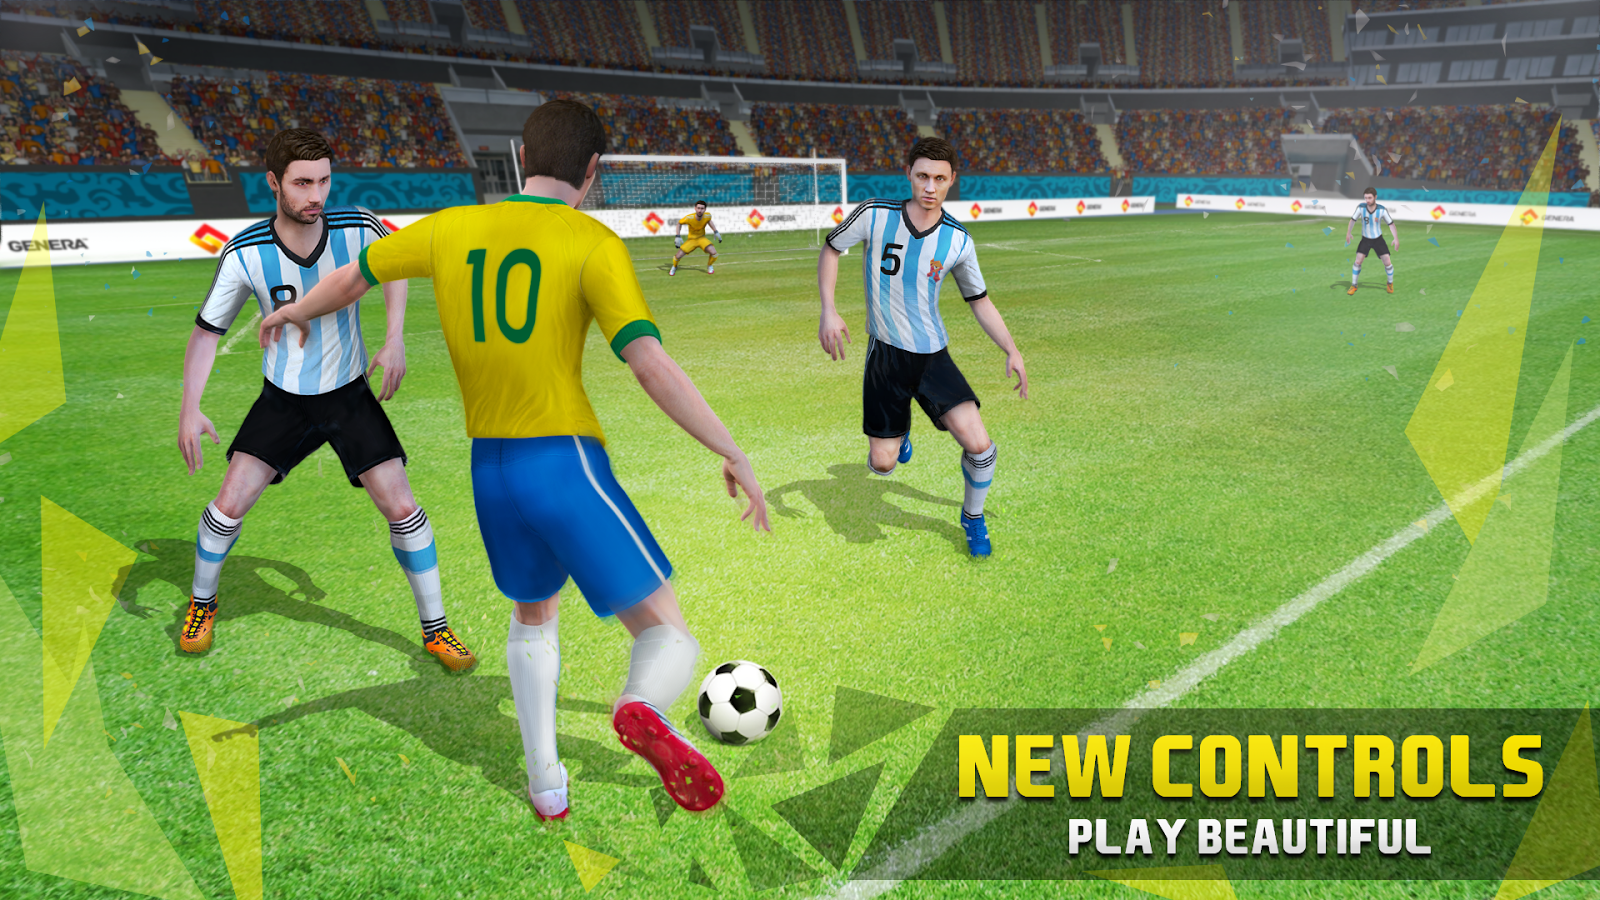 Nov 30,  · A new season of FIFA Mobile is here. Experience all-new gameplay, graphics, Head to Head mode, team Chemistry, and more with an upgraded game engine. It's the world's game, taken to a whole new level for mobile. Build your Ultimate Team and take on opponents as you train any player to superstar status, attack rivals, and engage in fresh daily content all season long.